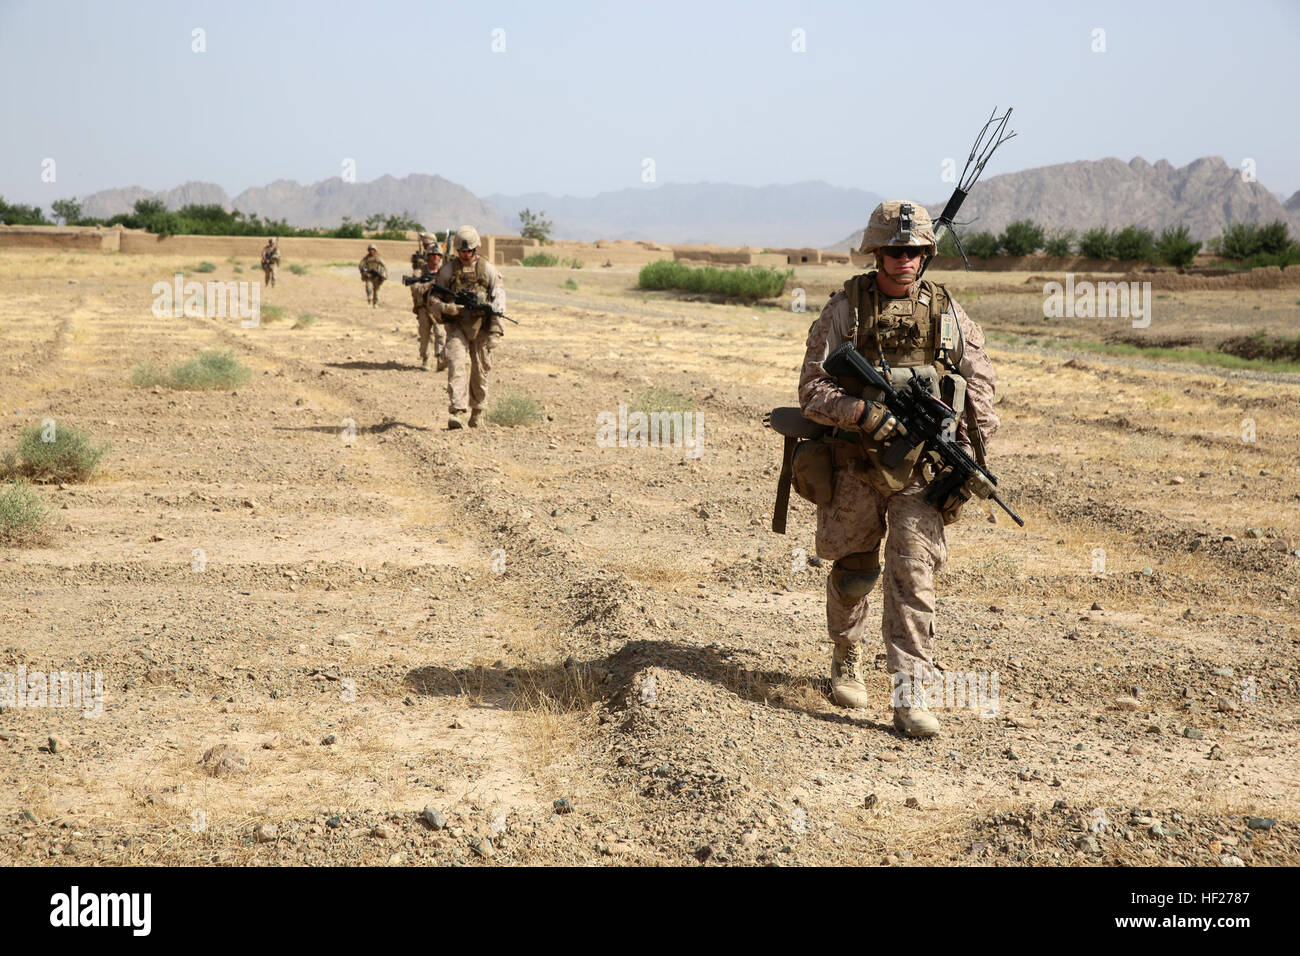 Marines with Bravo Company, 1st Battalion, 7th Marine Regiment, conduct a security patrol during a mission in Helmand - Stock Image